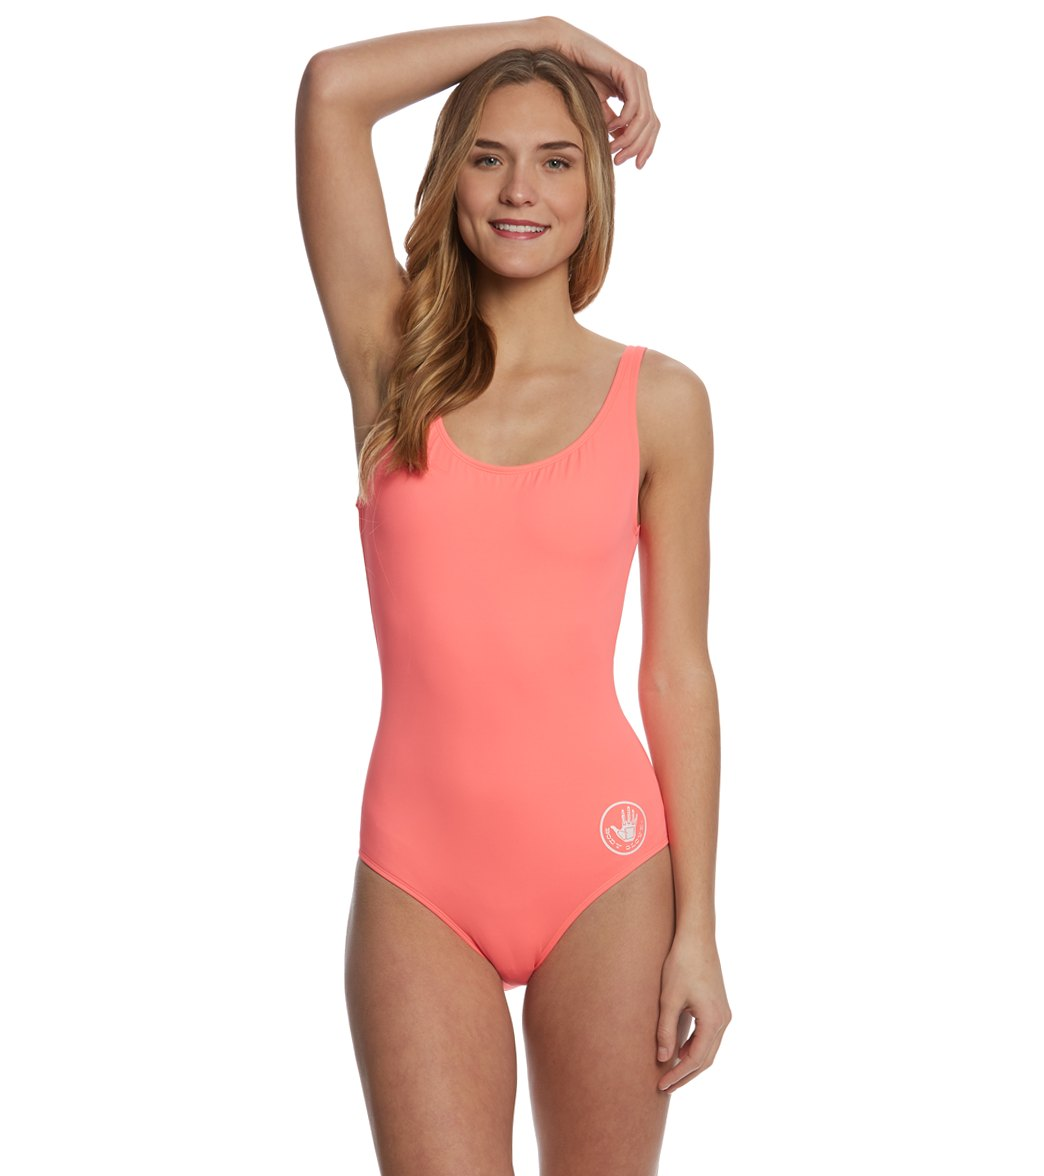 c2669e18b ... Body Glove Smoothies U And Me One Piece Swimsuit. Play Video. MODEL  MEASUREMENTS